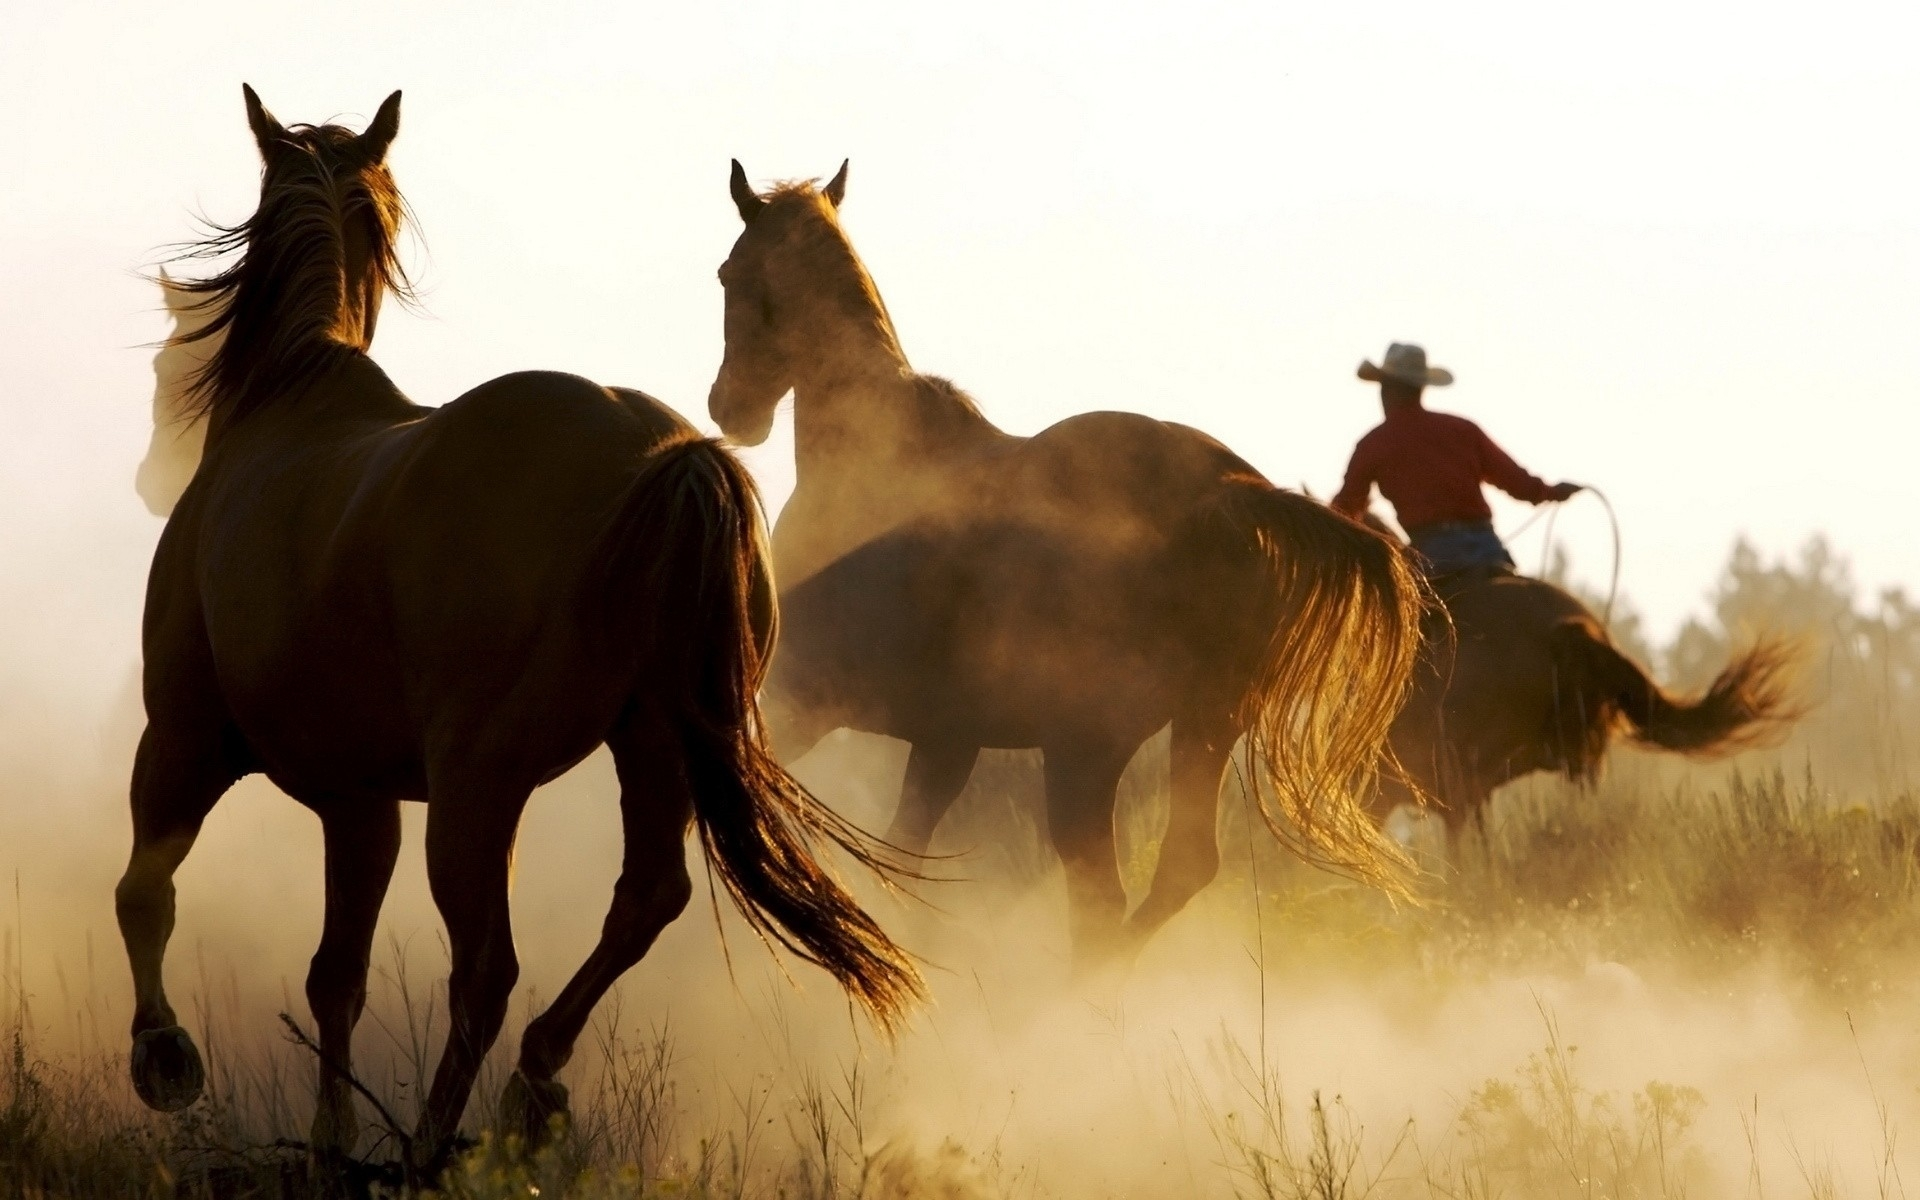 Animals horses people cowboys dust men males rustic ...